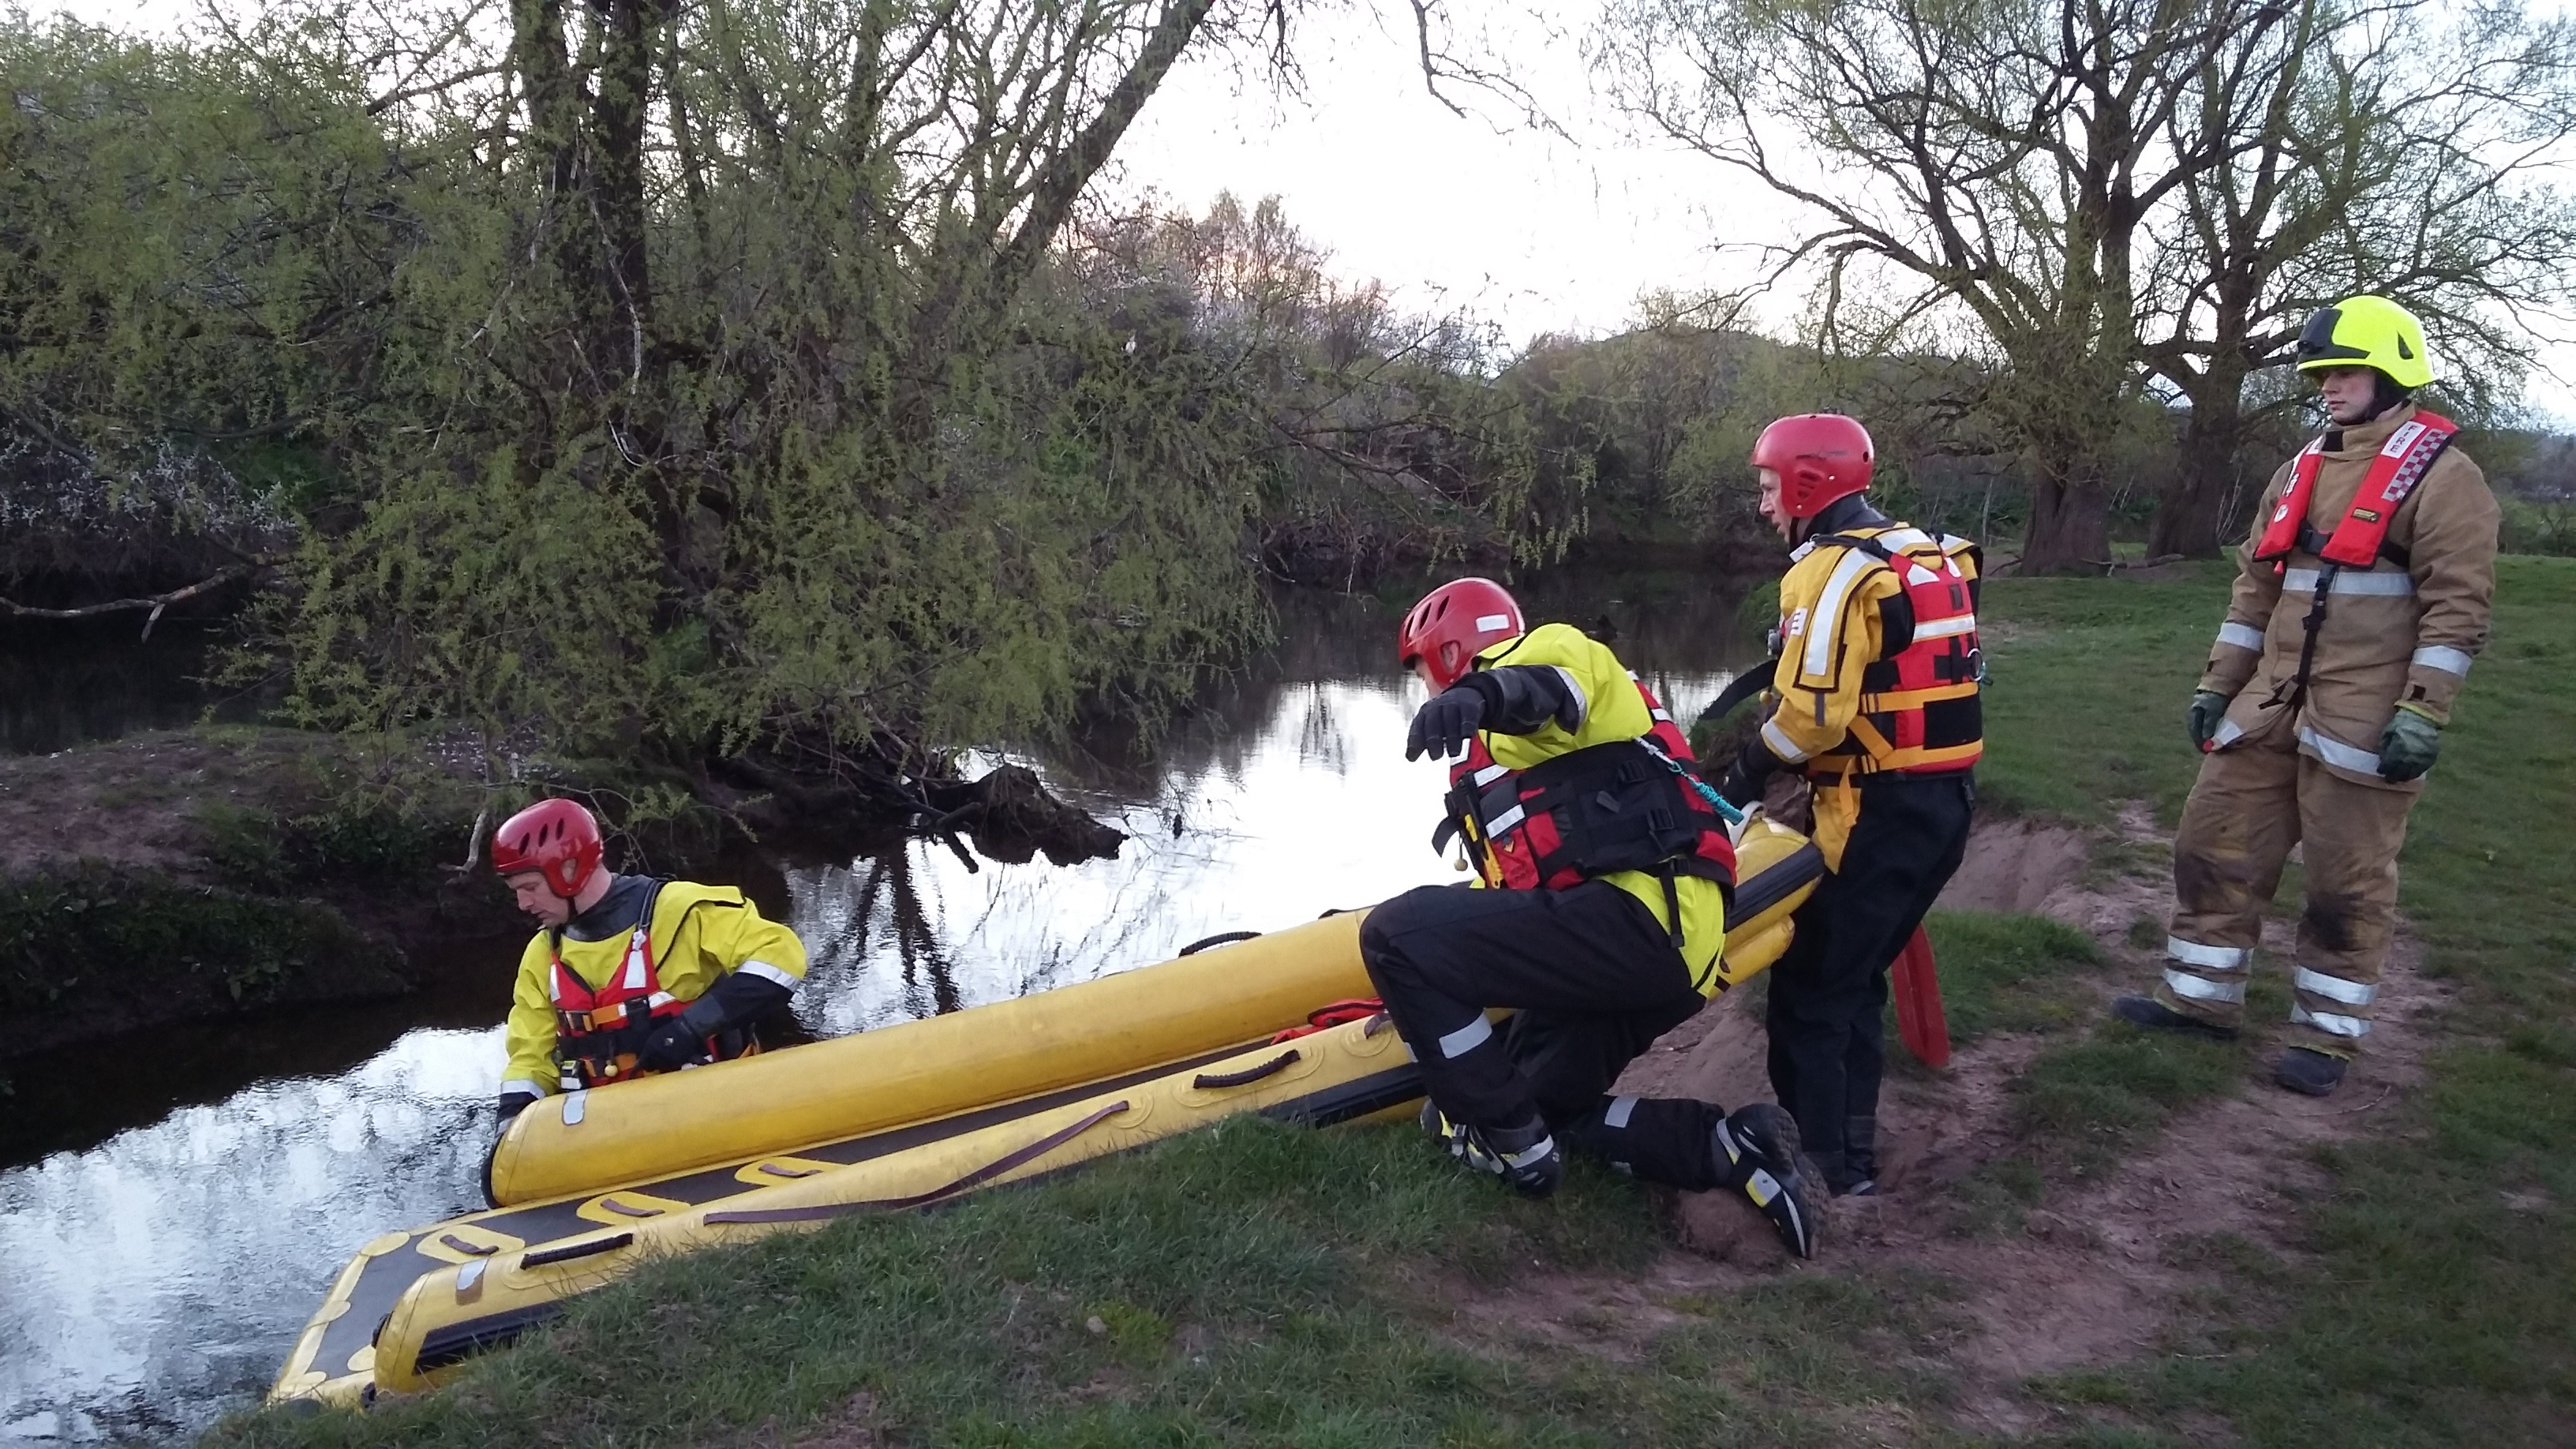 Crews rescue four females from water in Stirling